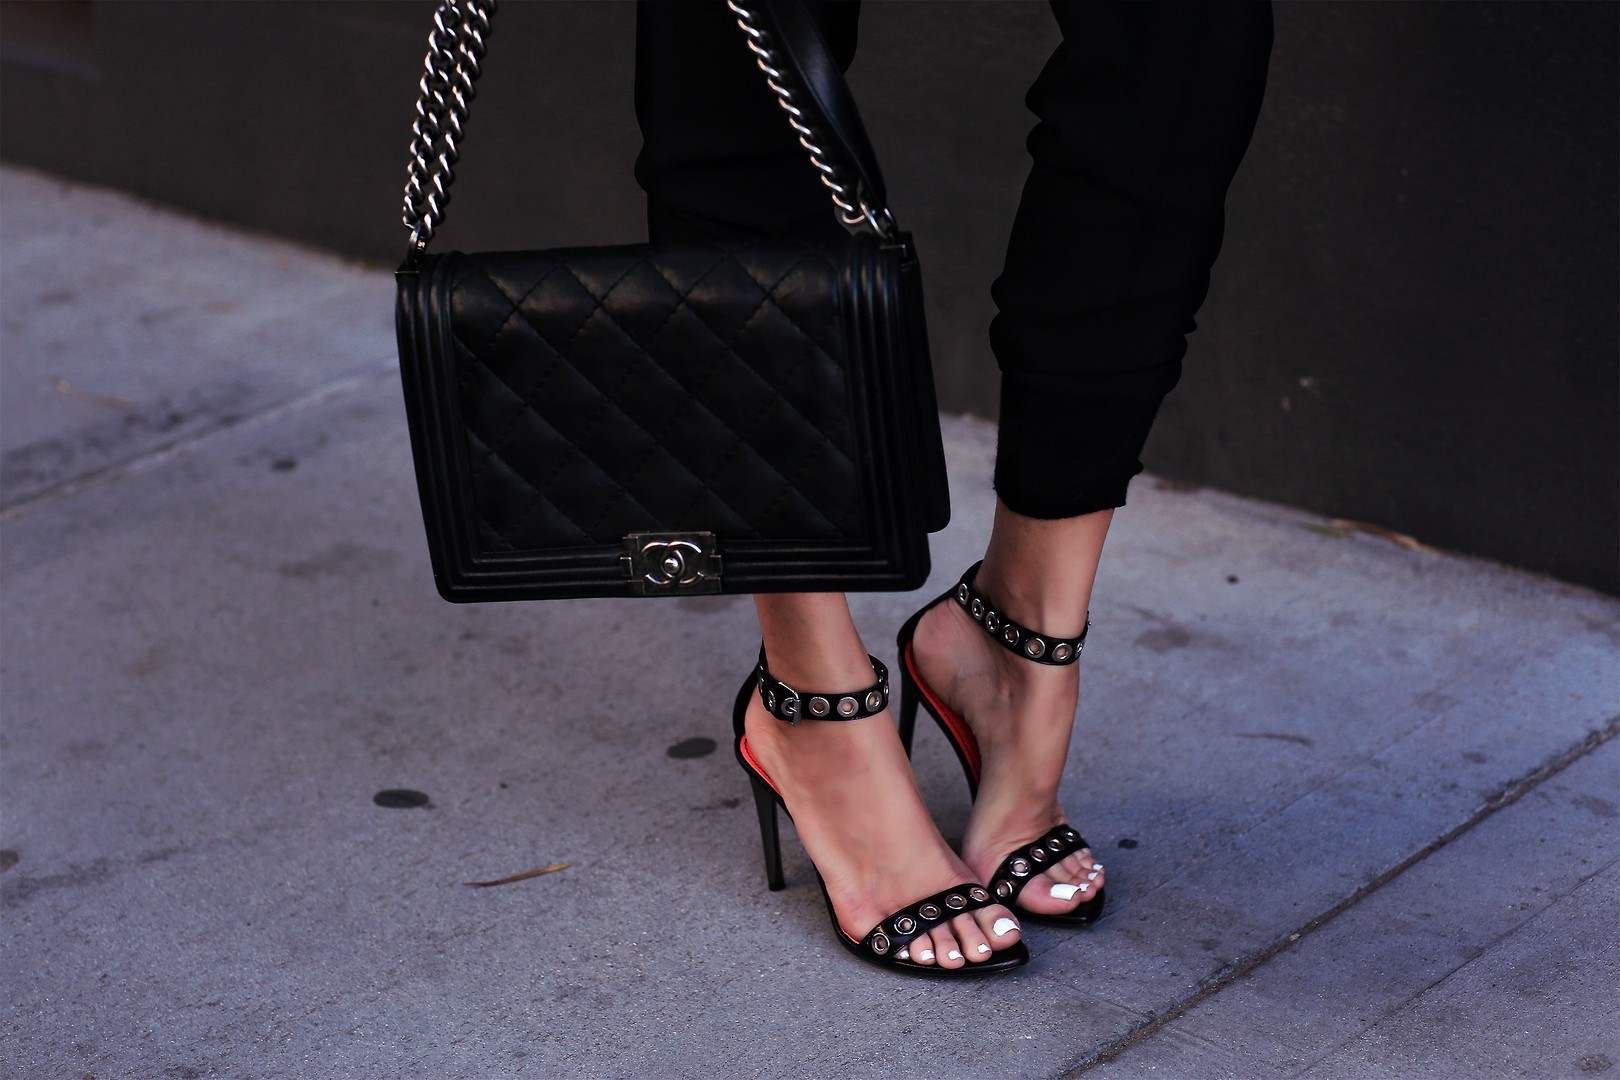 Proenza Schouler shoes